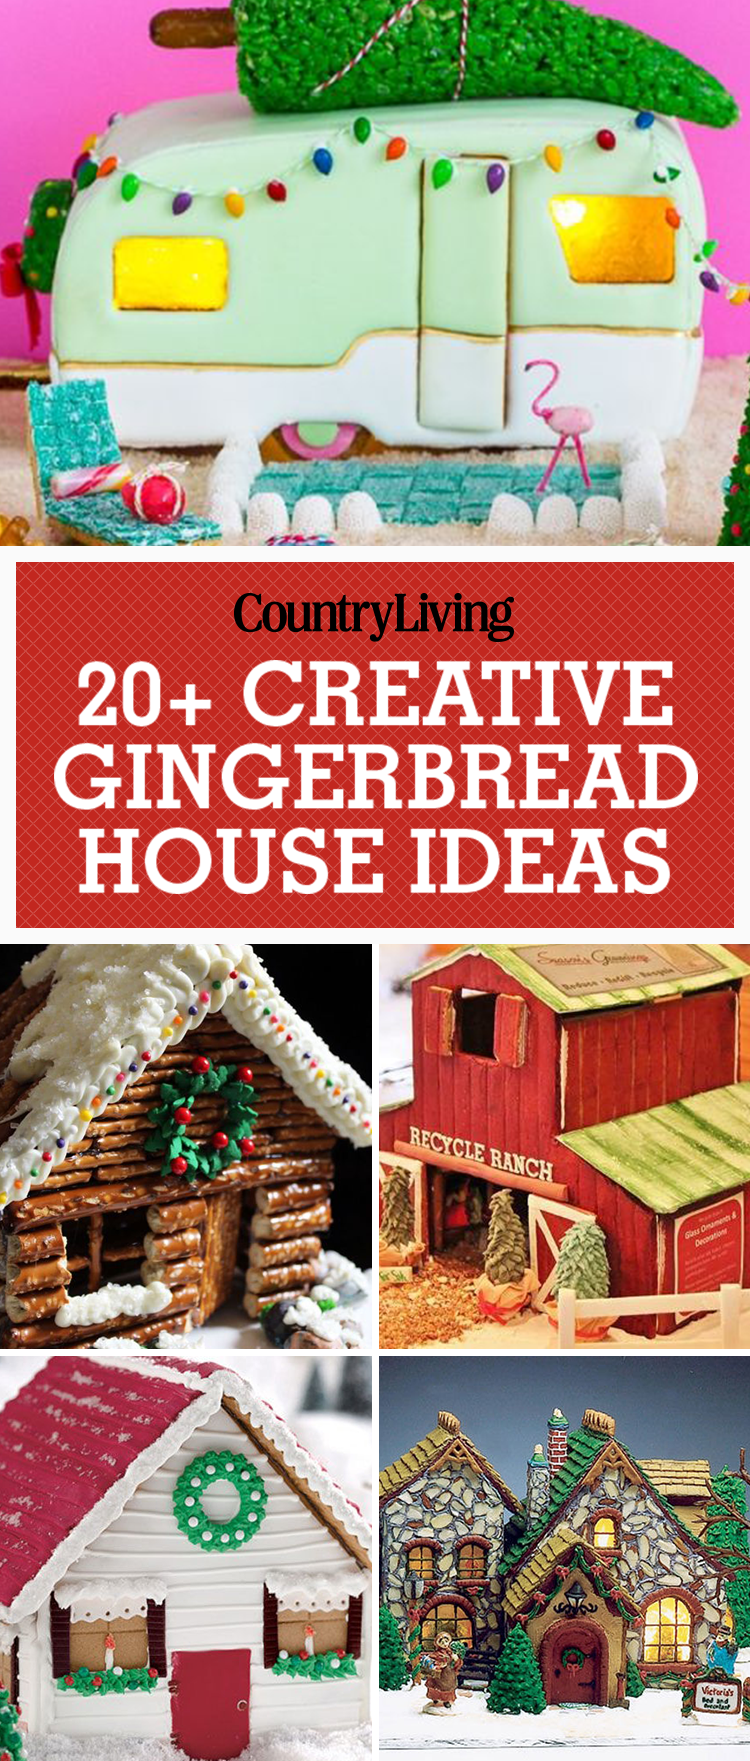 25 cute gingerbread house ideas pictures how to make a gingerbread house. Black Bedroom Furniture Sets. Home Design Ideas